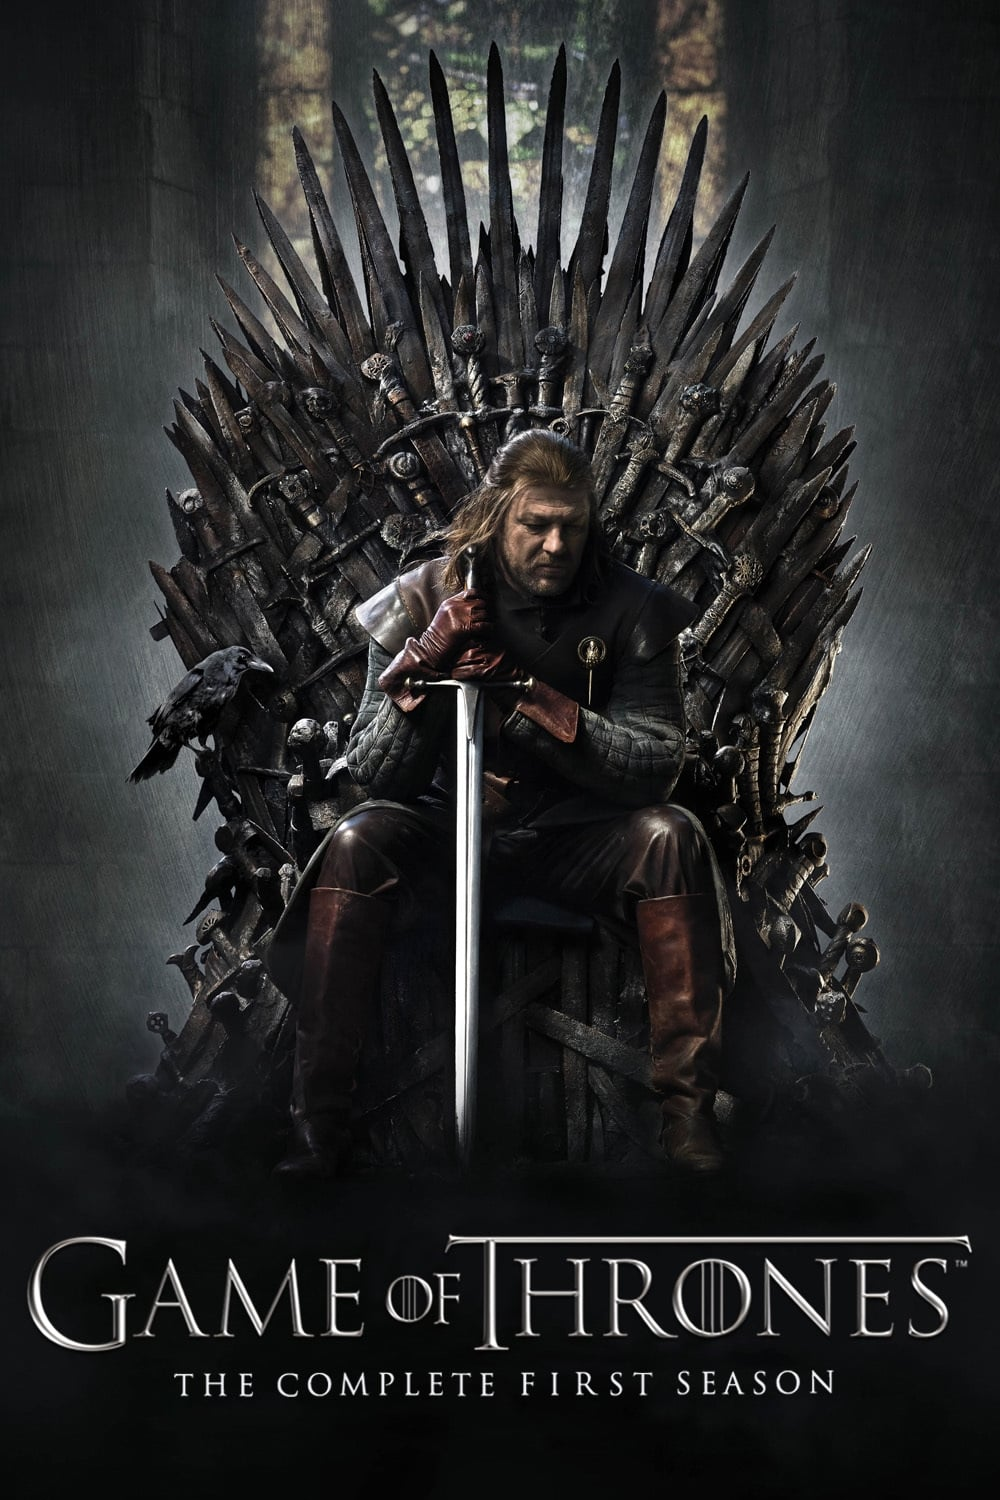 http://ok420dr.com/game-of-thrones-1a-temporada-2011-bdrip-bluray-720p-torrent-dual-audio/